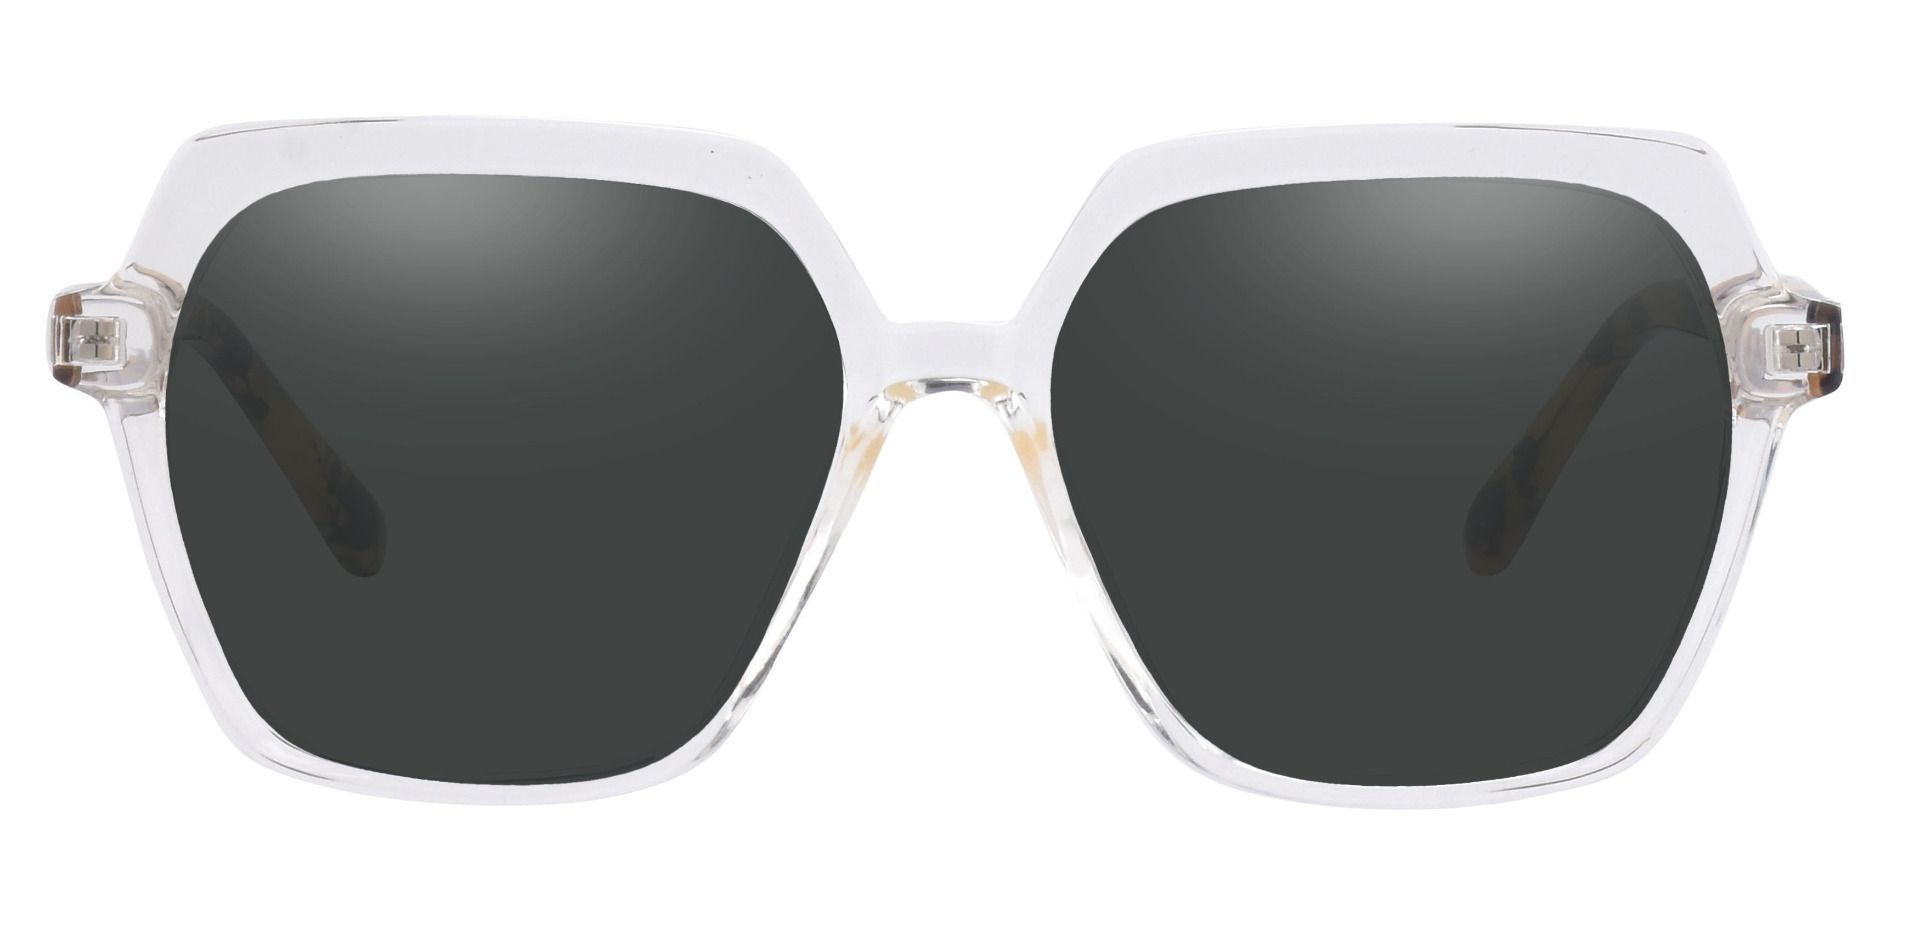 Regent Geometric Lined Bifocal Sunglasses - Clear Frame With Gray Lenses